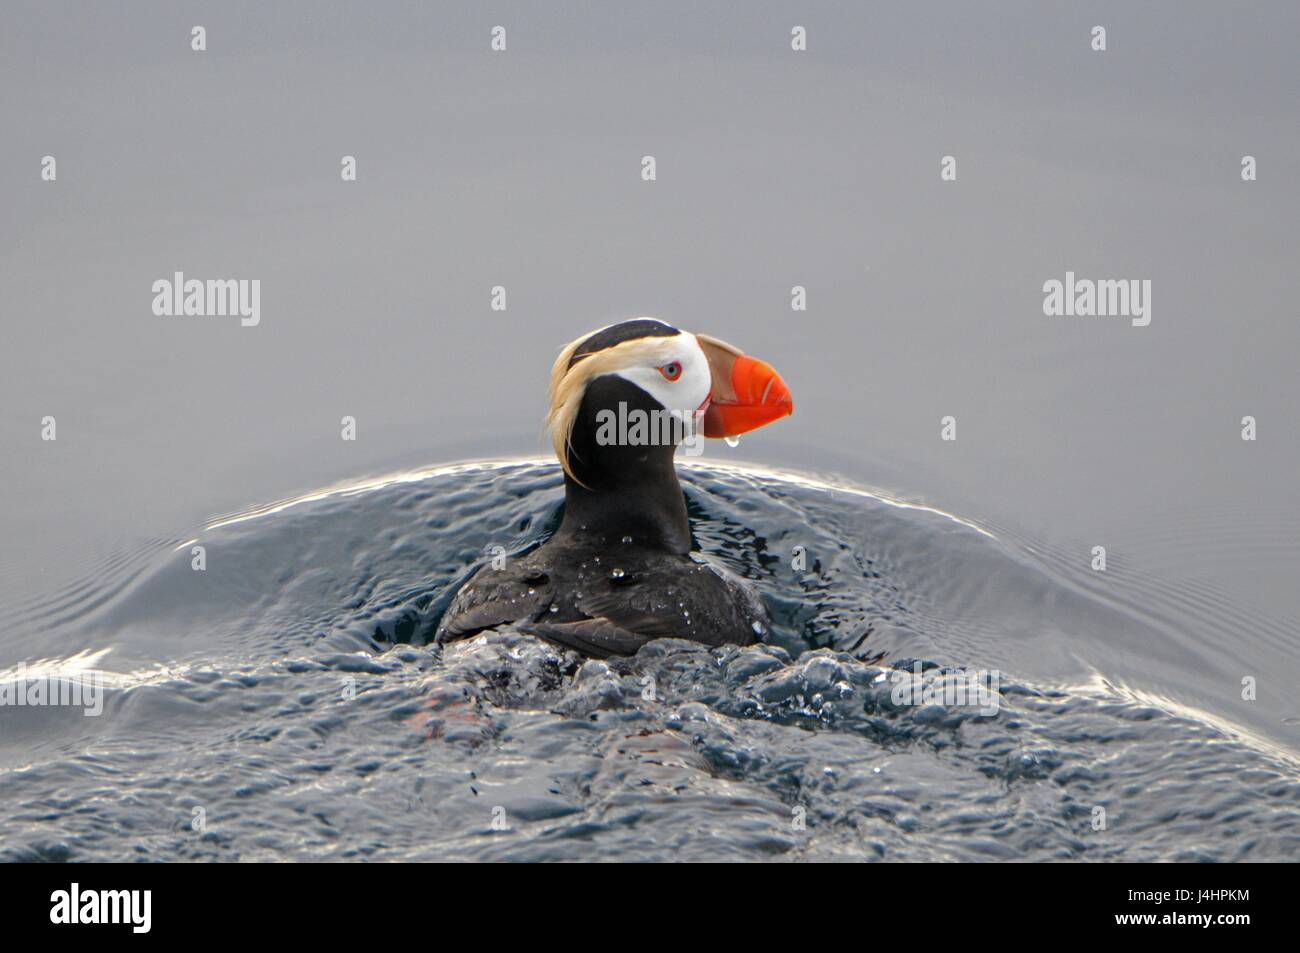 A tufted puffin seabird swims through the waters at Dutch Harbor November 23, 2016 in the Aleutian Islands, Alaska. - Stock Image